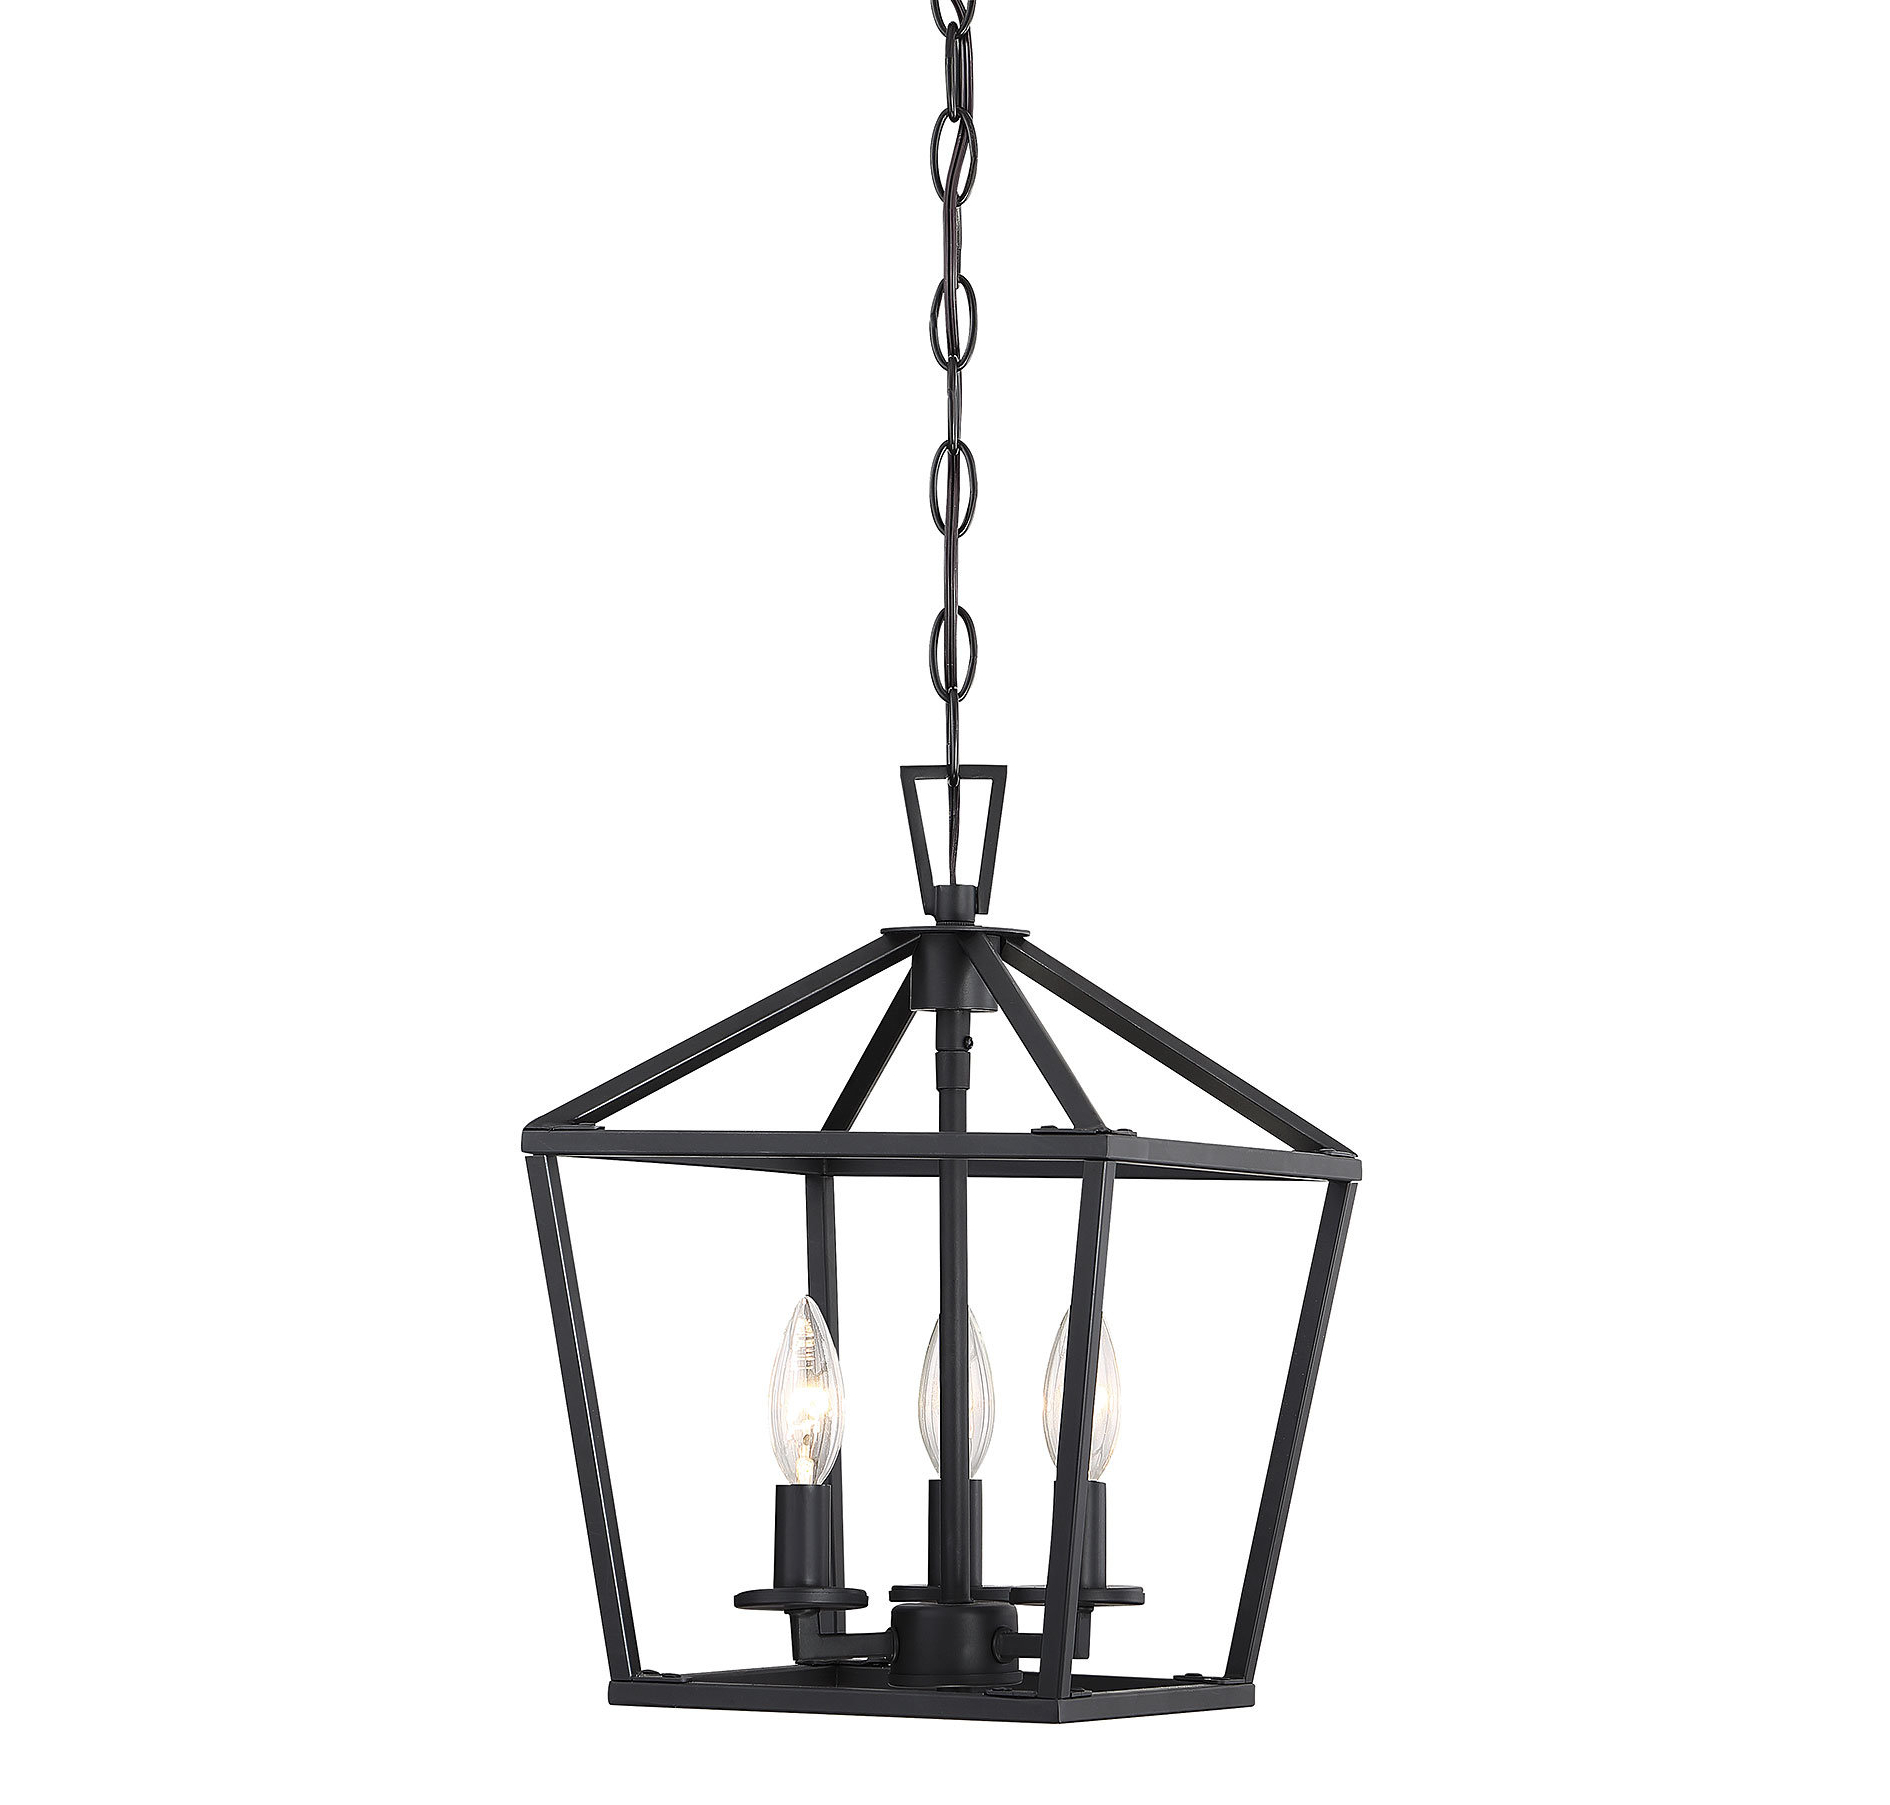 Gabriella 3 Light Lantern Chandeliers Intended For 2020 Israel 3 Light Lantern Geometric Pendant (View 9 of 20)